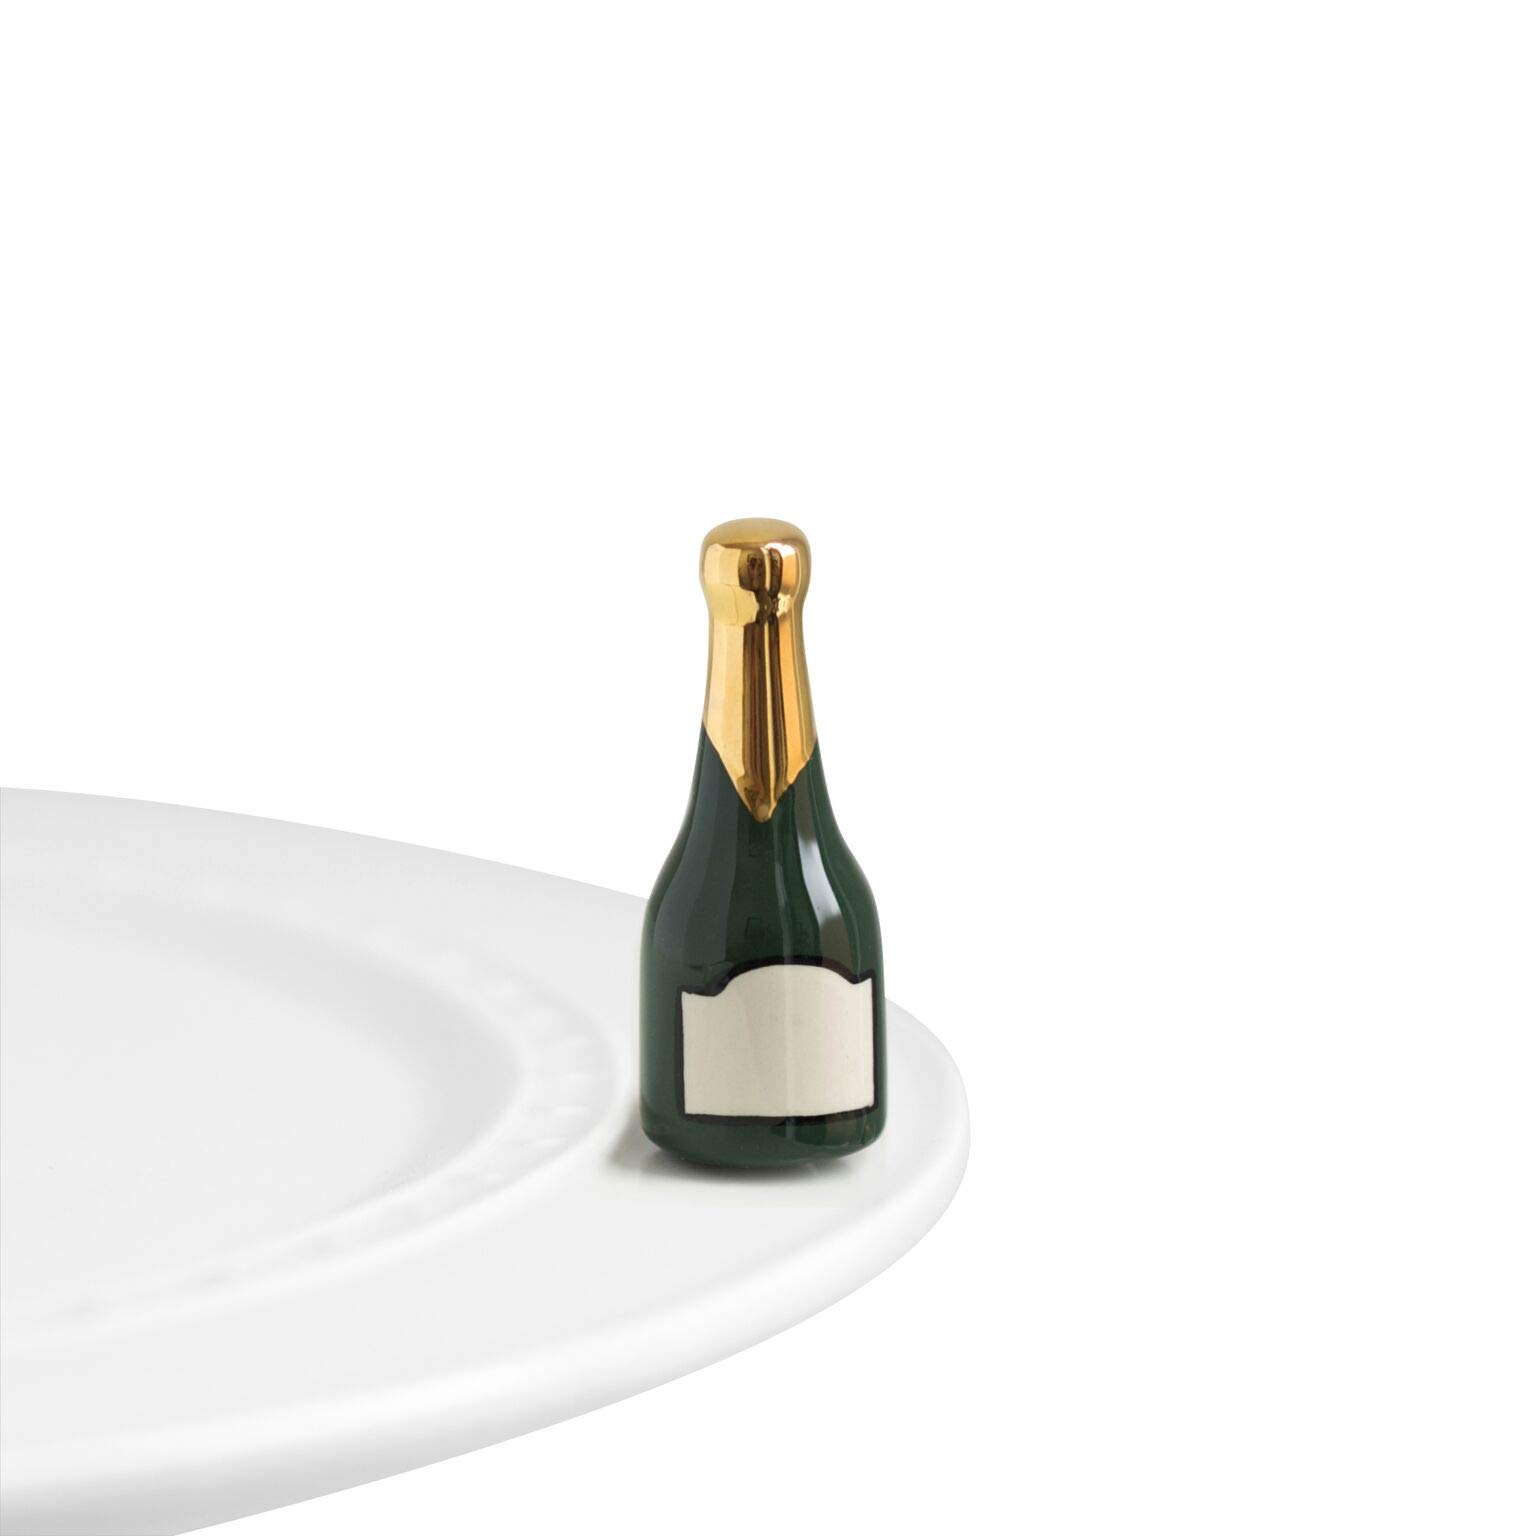 Nora Fleming Hand-Painted Mini: Champagne Celebration (Champagne) A94